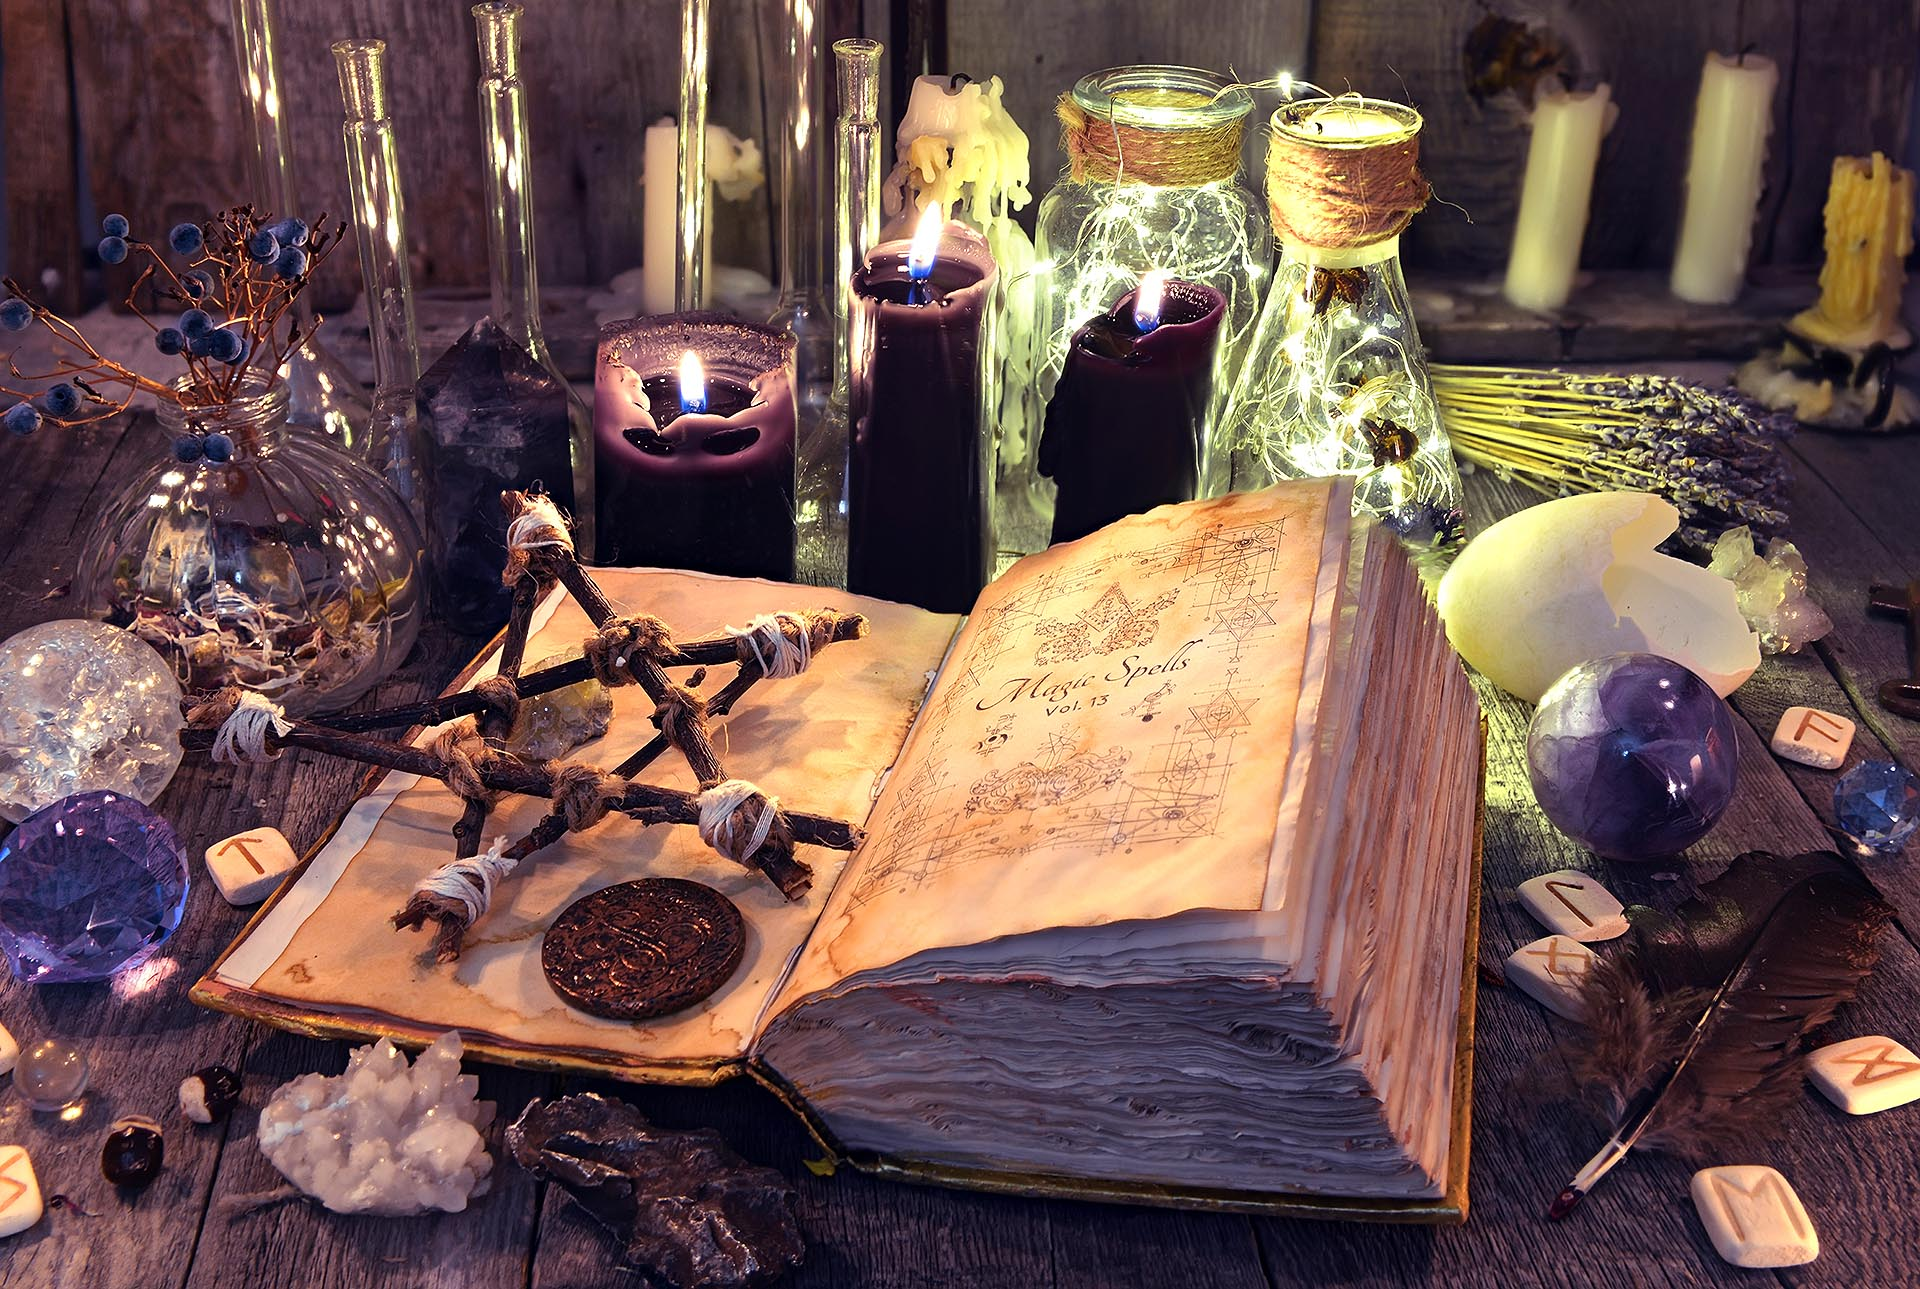 Magick spellbook with pentacle, candles and bottles